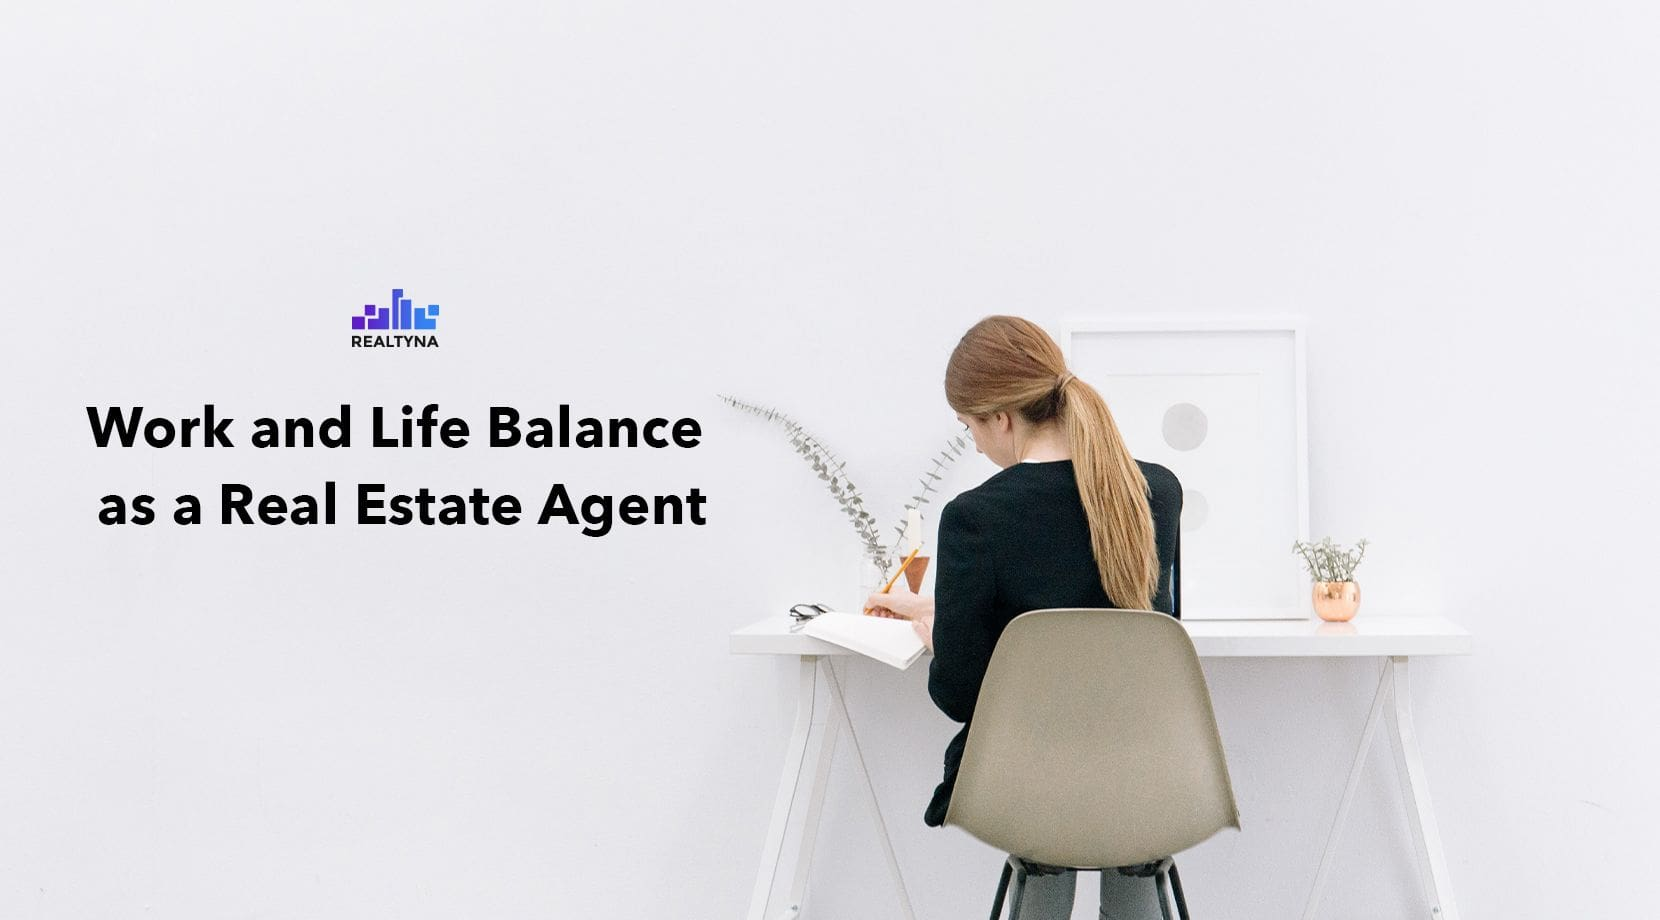 Life balance for Real Estate agents